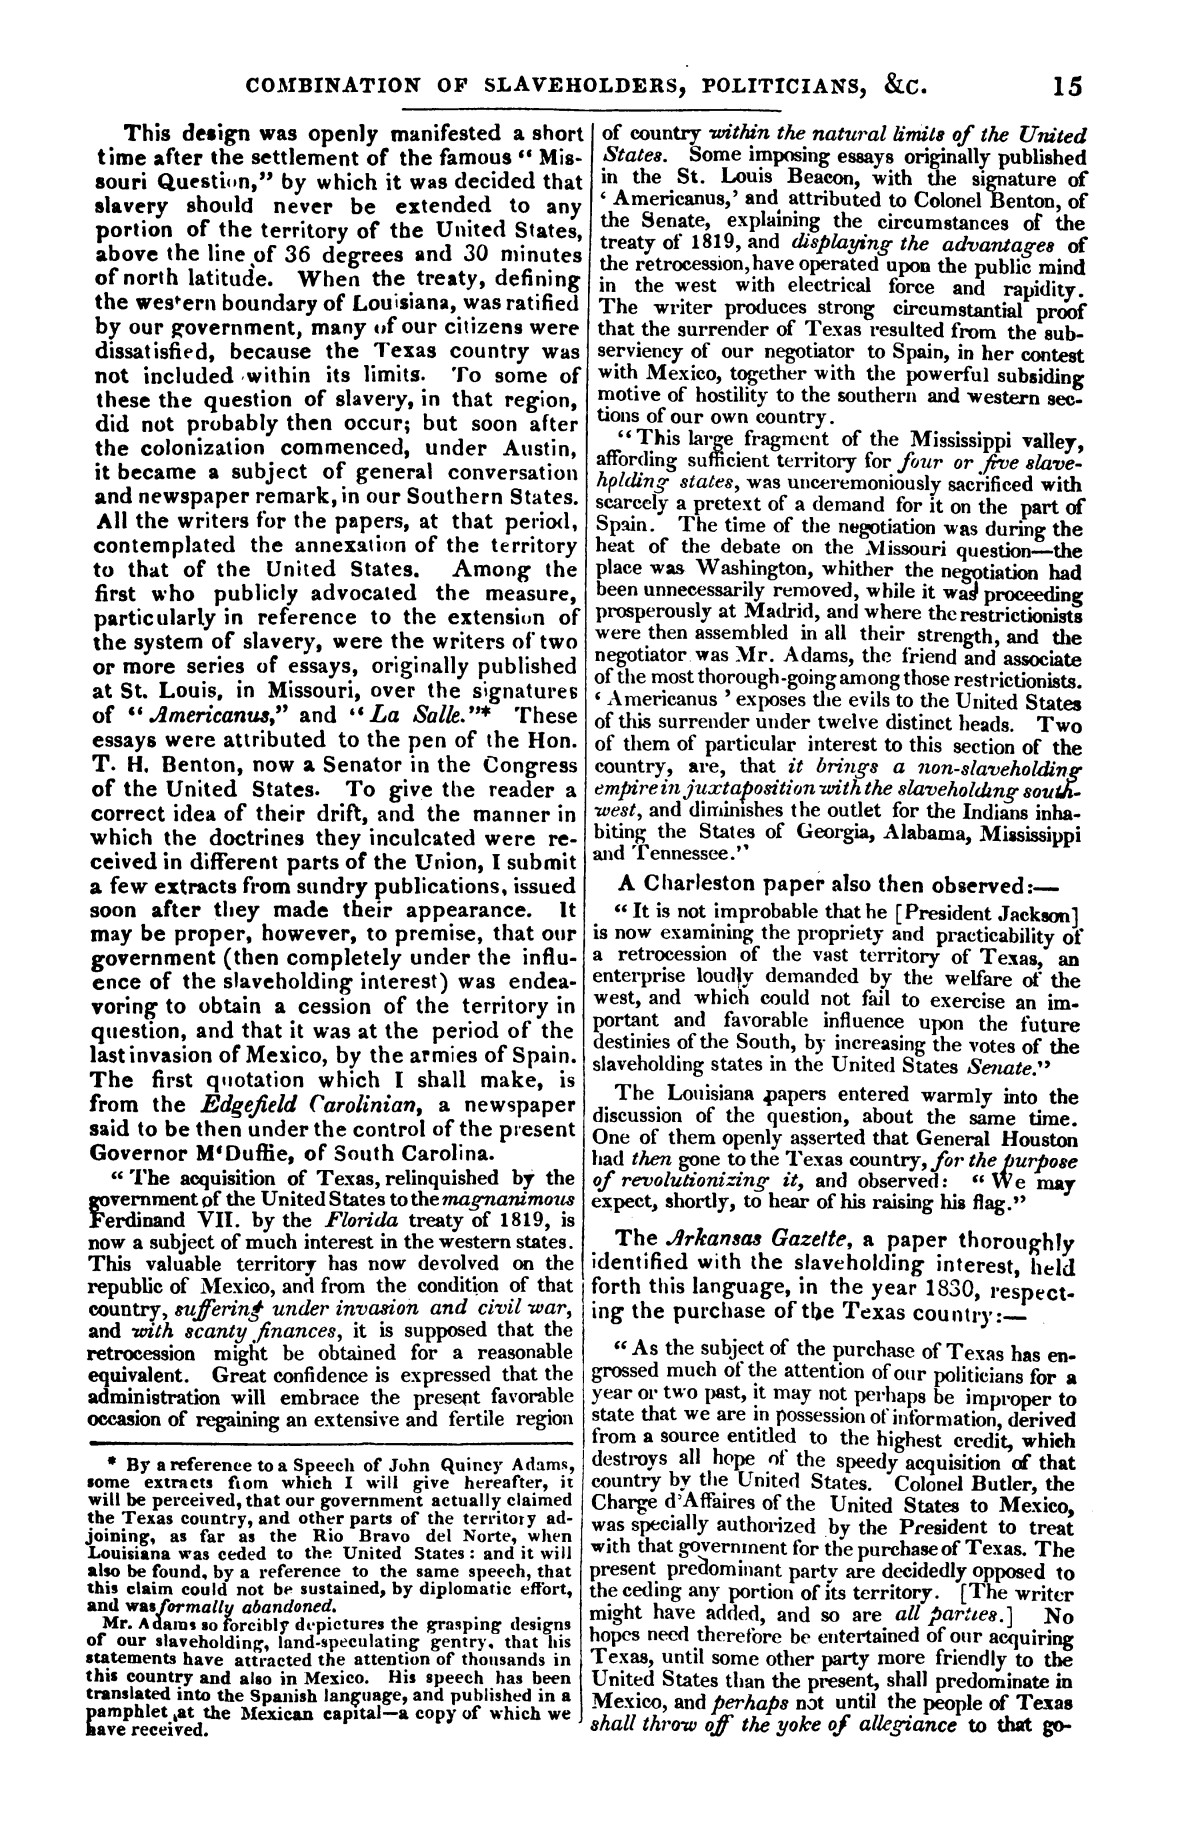 The war in Texas; a review of facts and circumstances, showing that this contest is a crusade against Mexico, set on foot by slaveholders, land speculators, & c. in order to re-establish, extend, and perpetuate the system of slavery and the slave trade.                                                                                                      [Sequence #]: 15 of 64